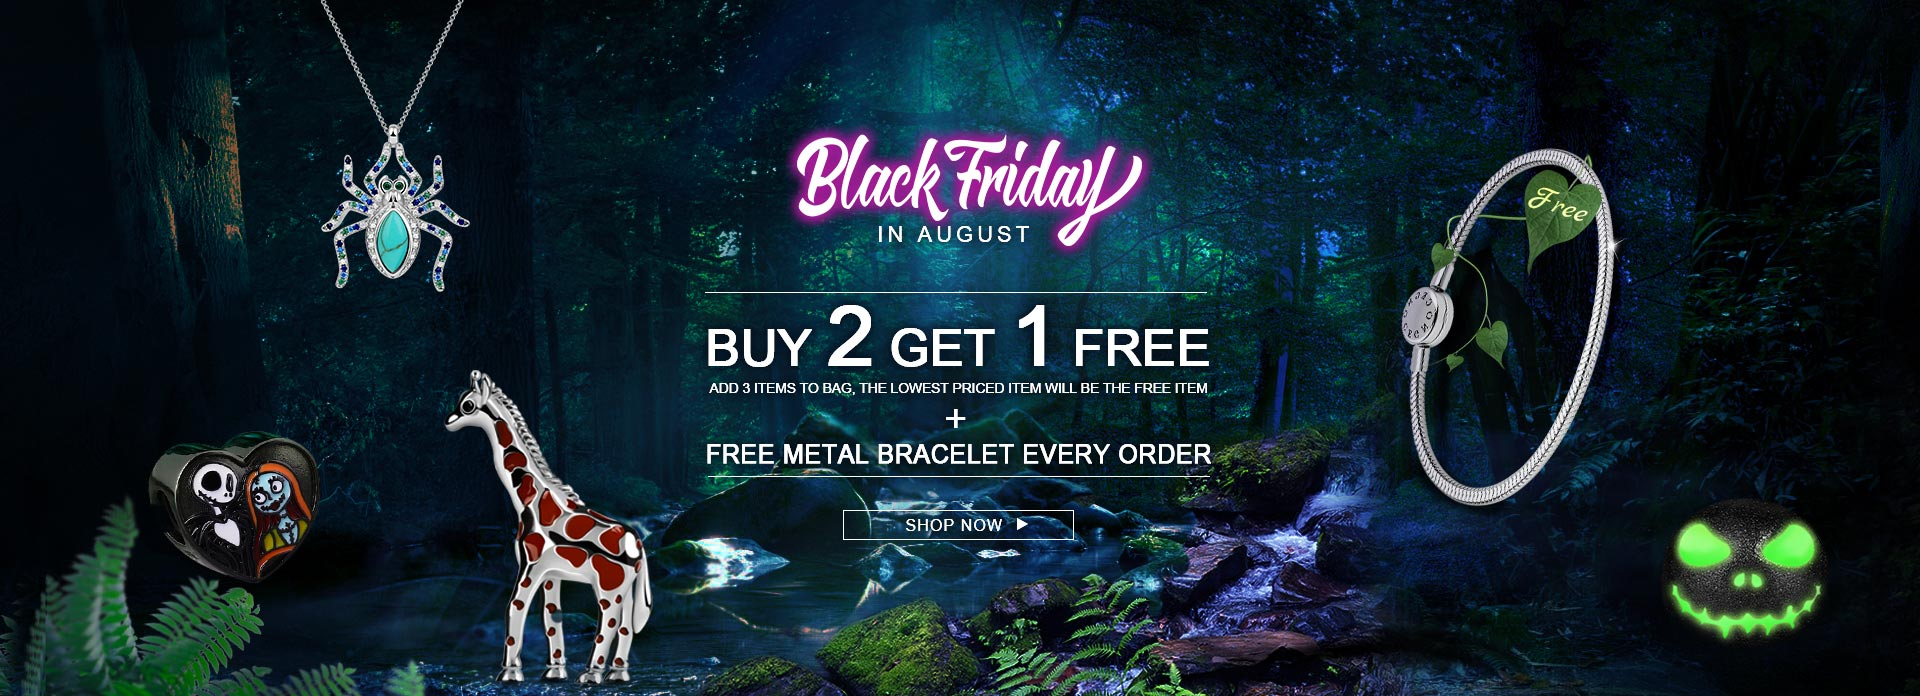 Black Friday in August